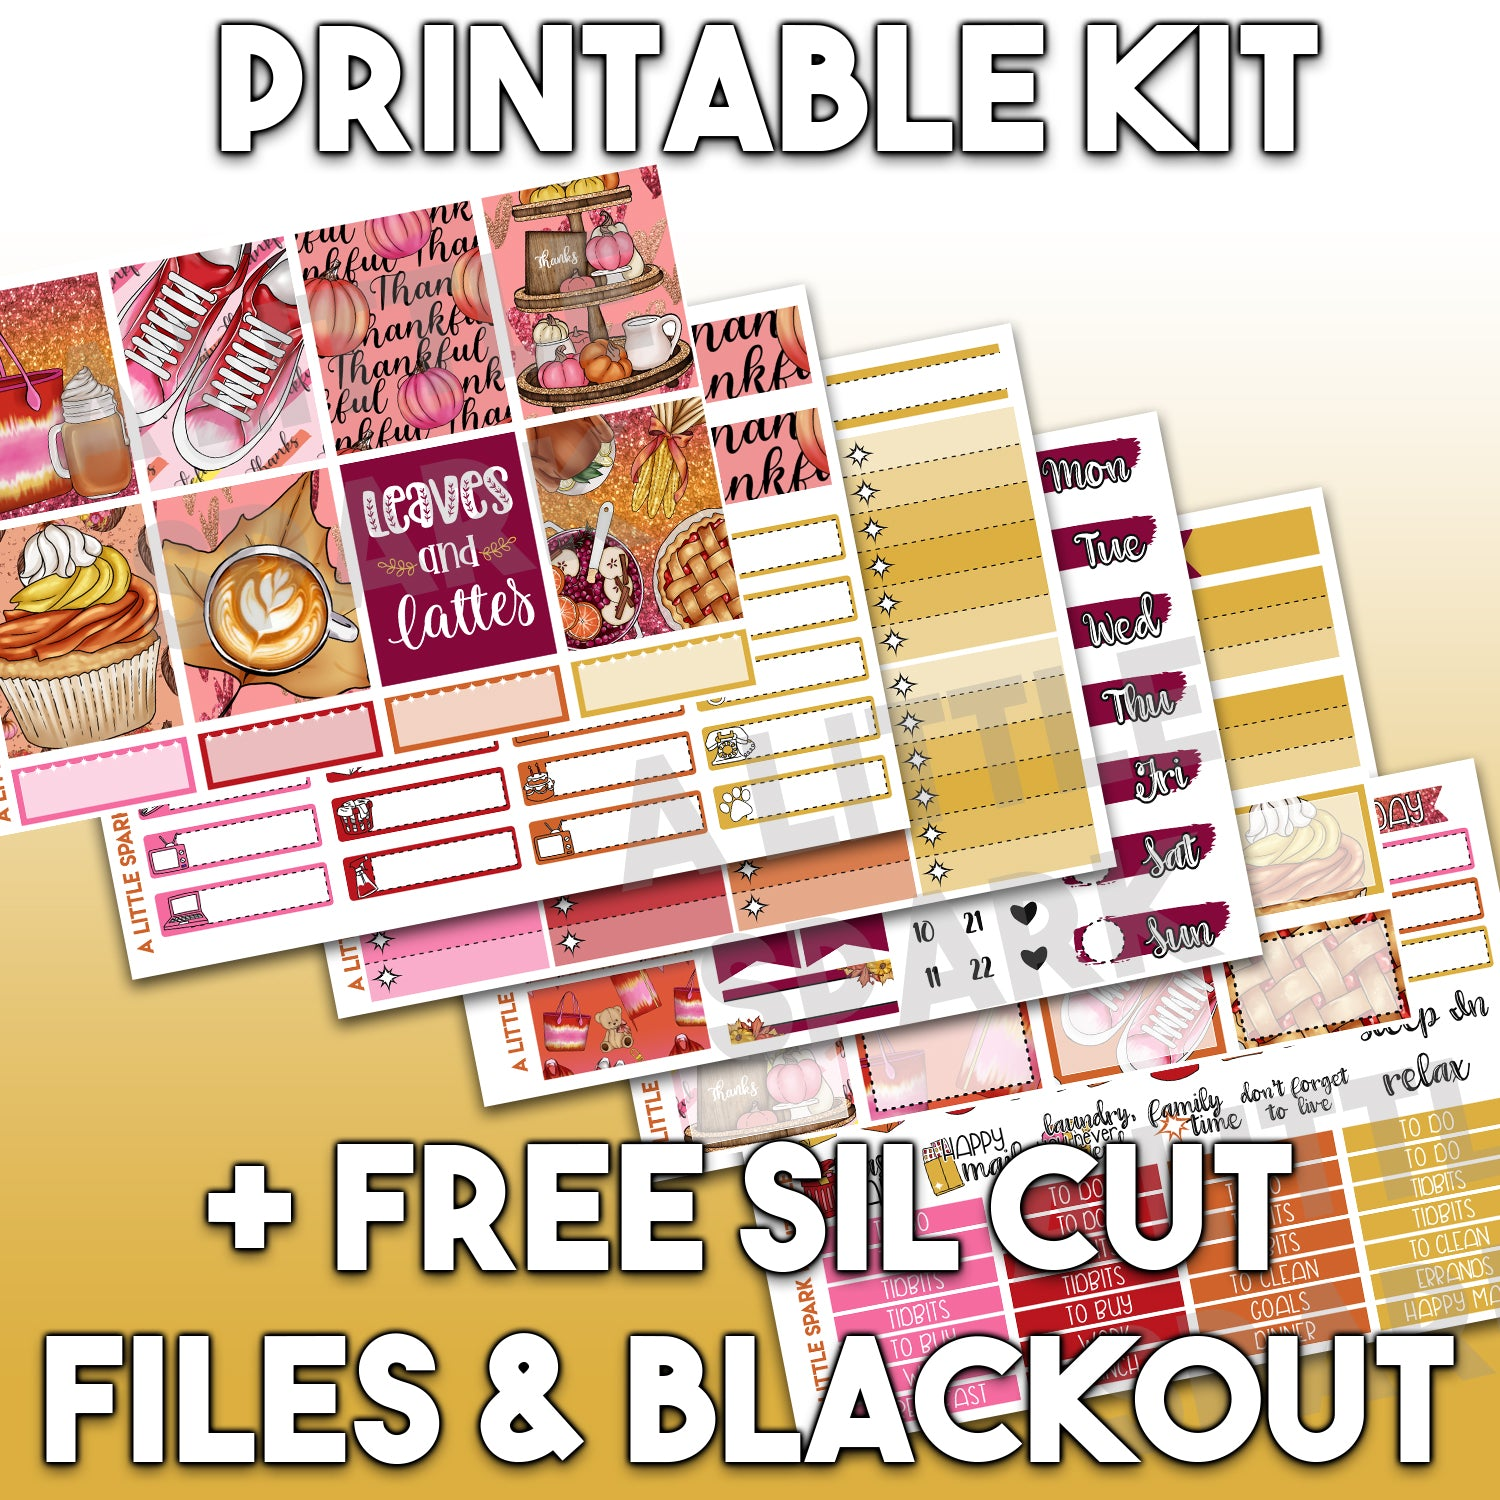 Vertical PRINTABLE Kit: Thursday